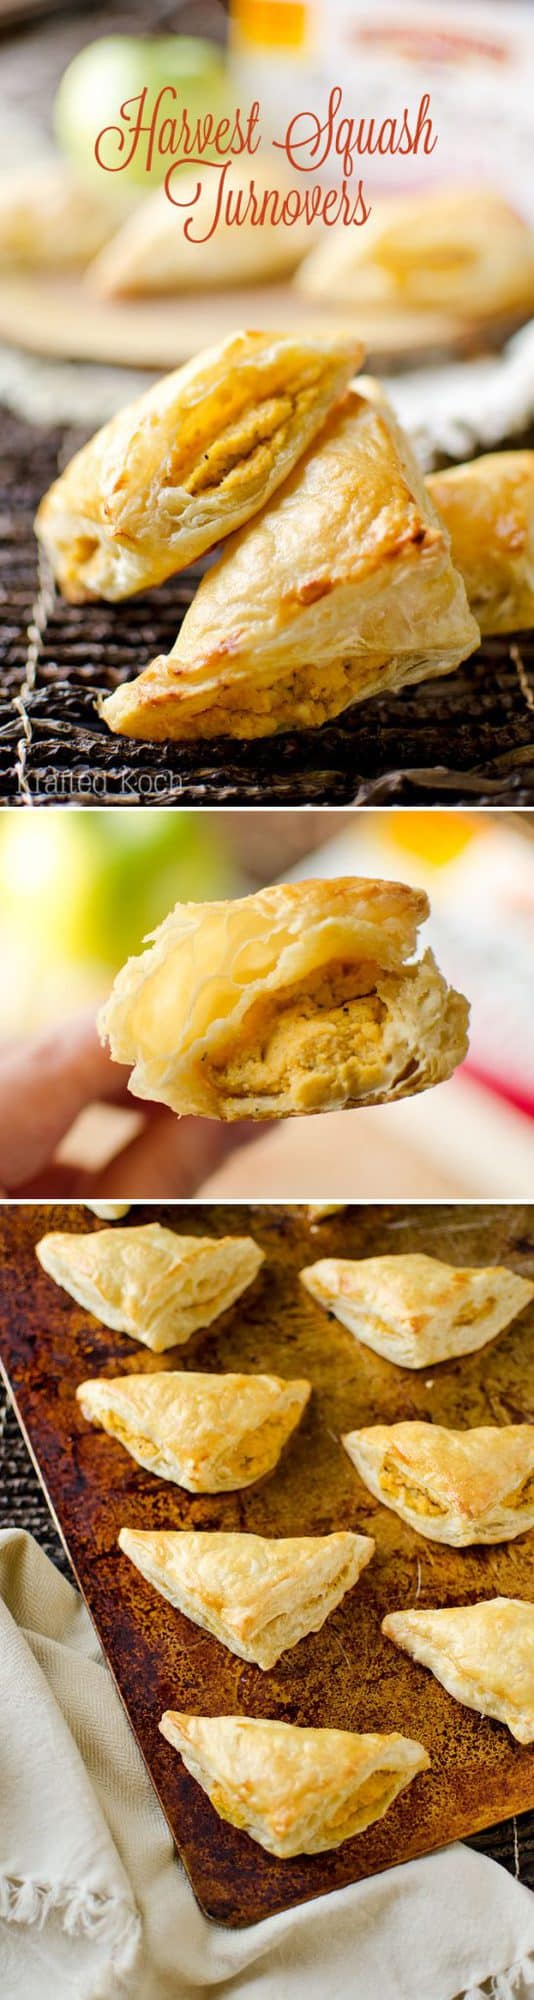 Harvest Squash Turnovers - Krafted Koch - A fall inspired appetizer recipe with creamy butternut squash and goat cheese paired with sweet apple, roasted garlic and sage and enveloped in a flaky puff pastry shell.